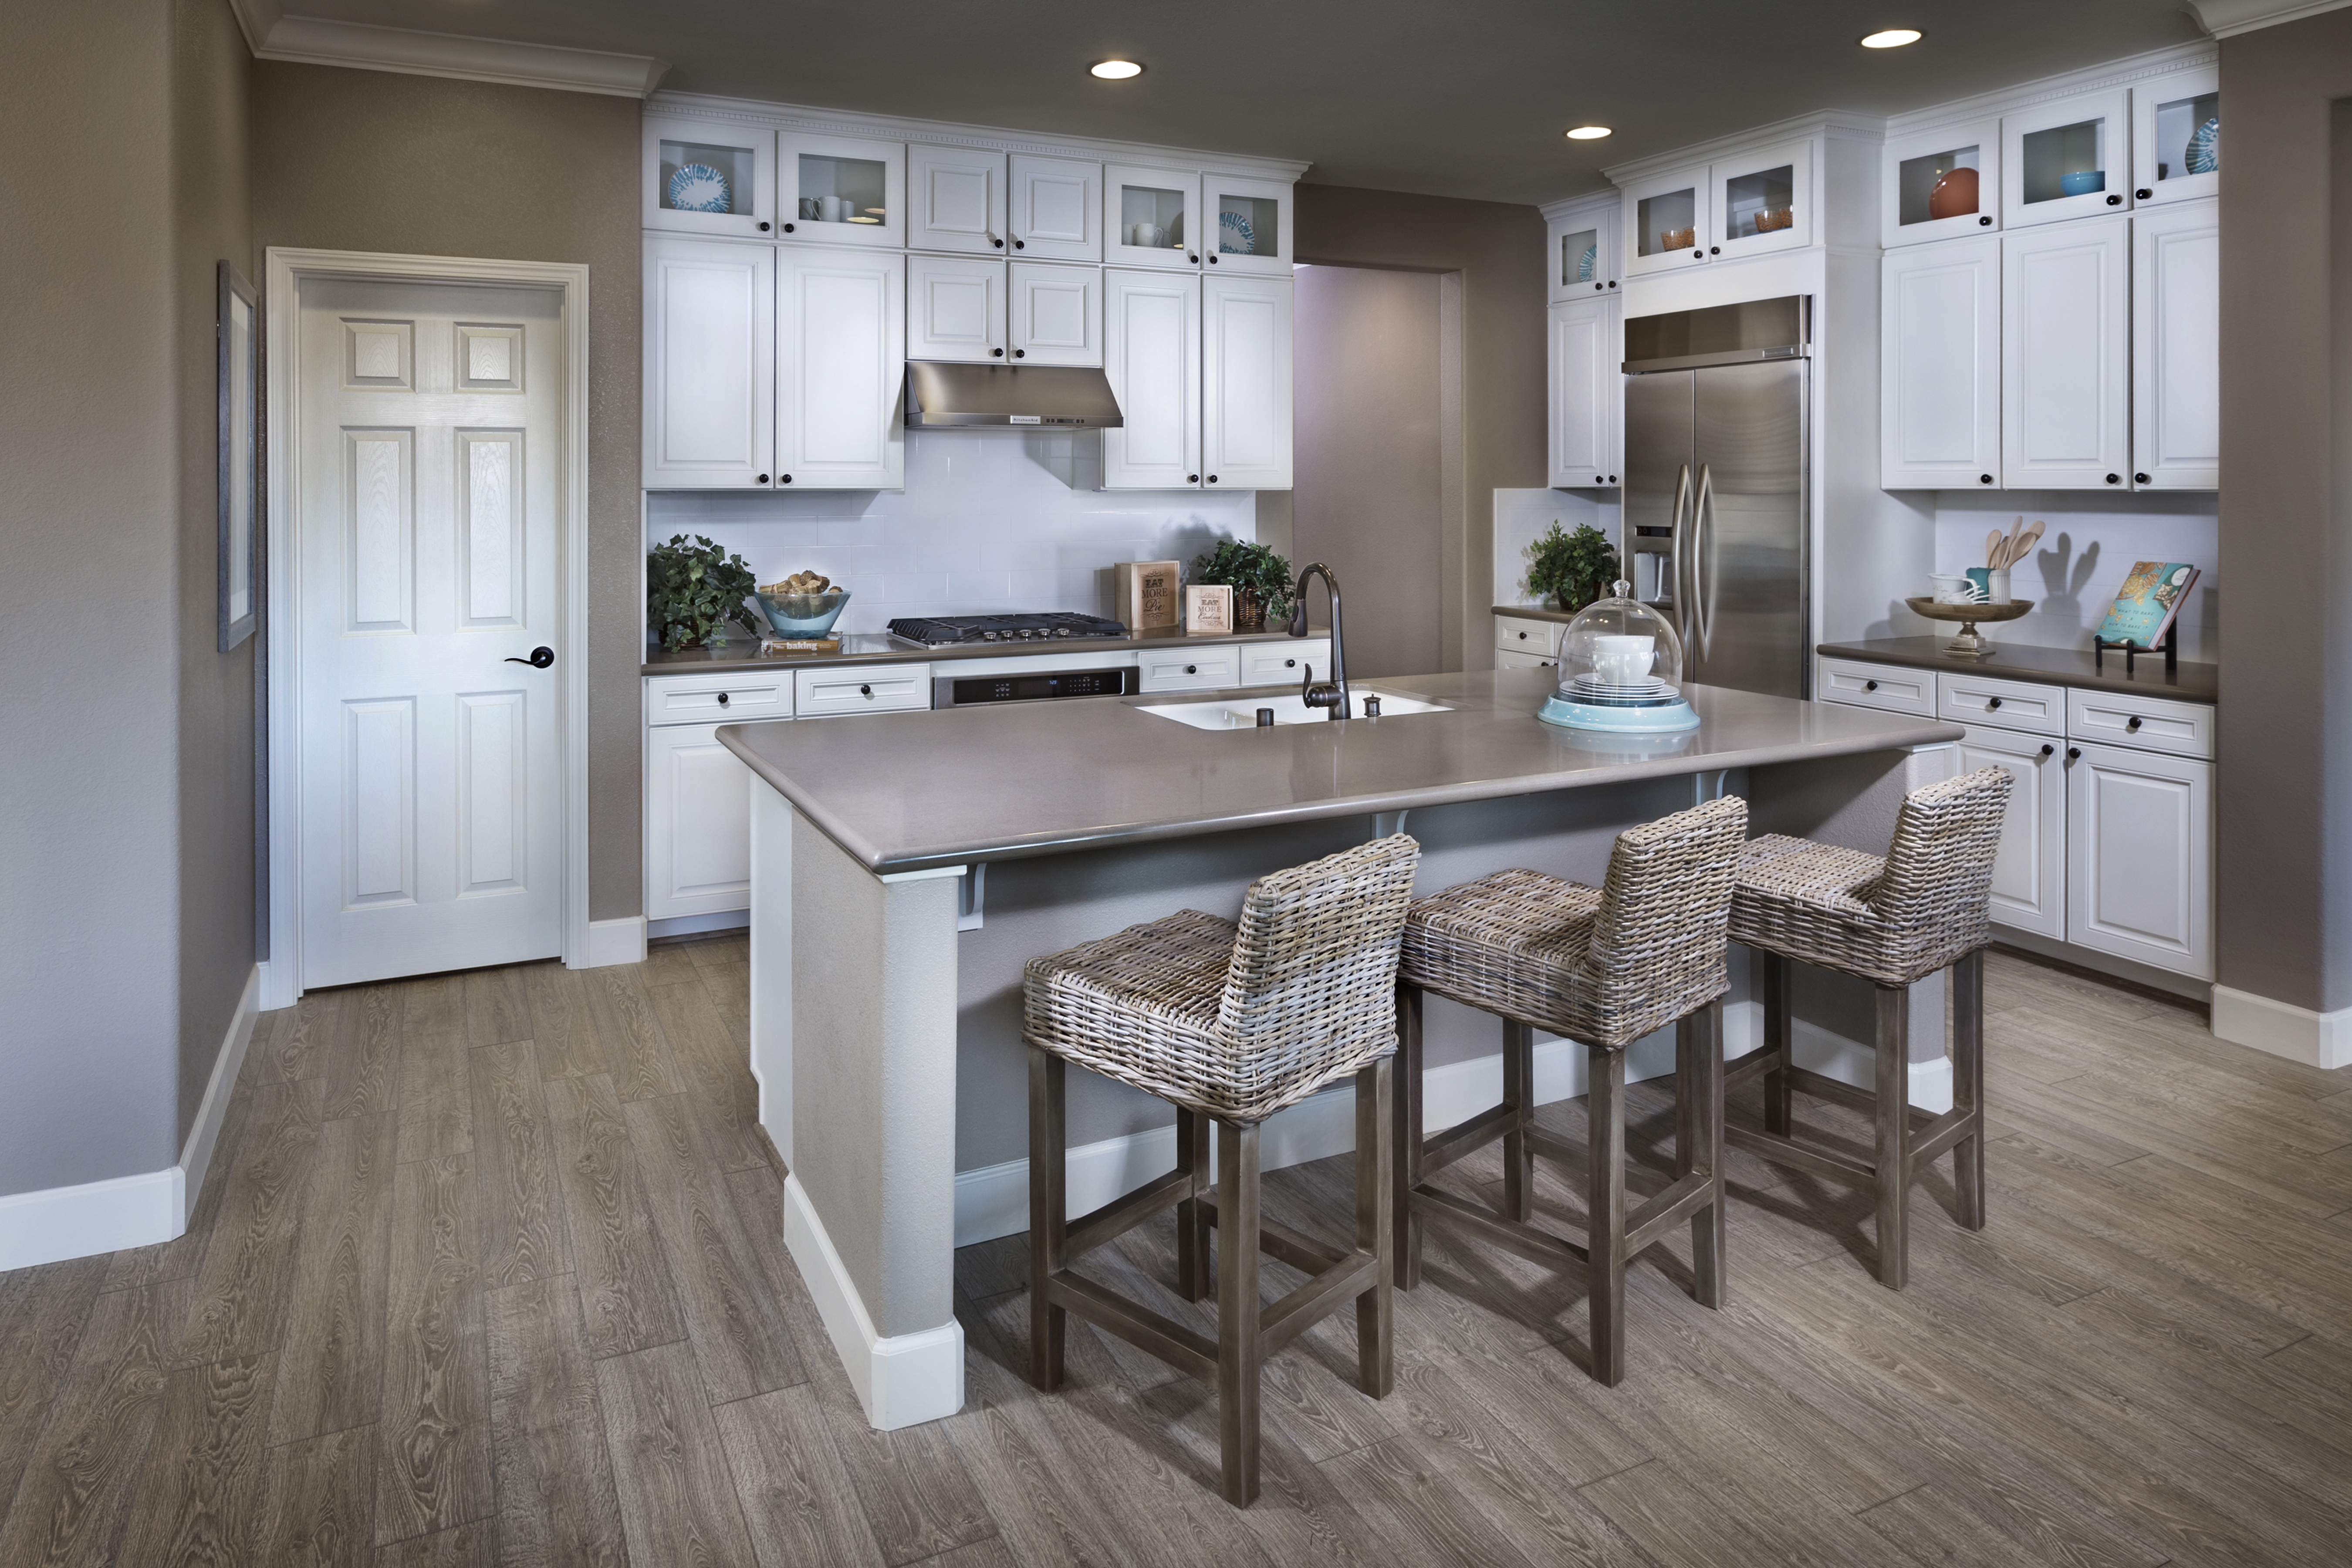 Lovely KB Home Announces The Grand Opening Of Its New Sterling Chateau Community  In Vacaville | Business Wire